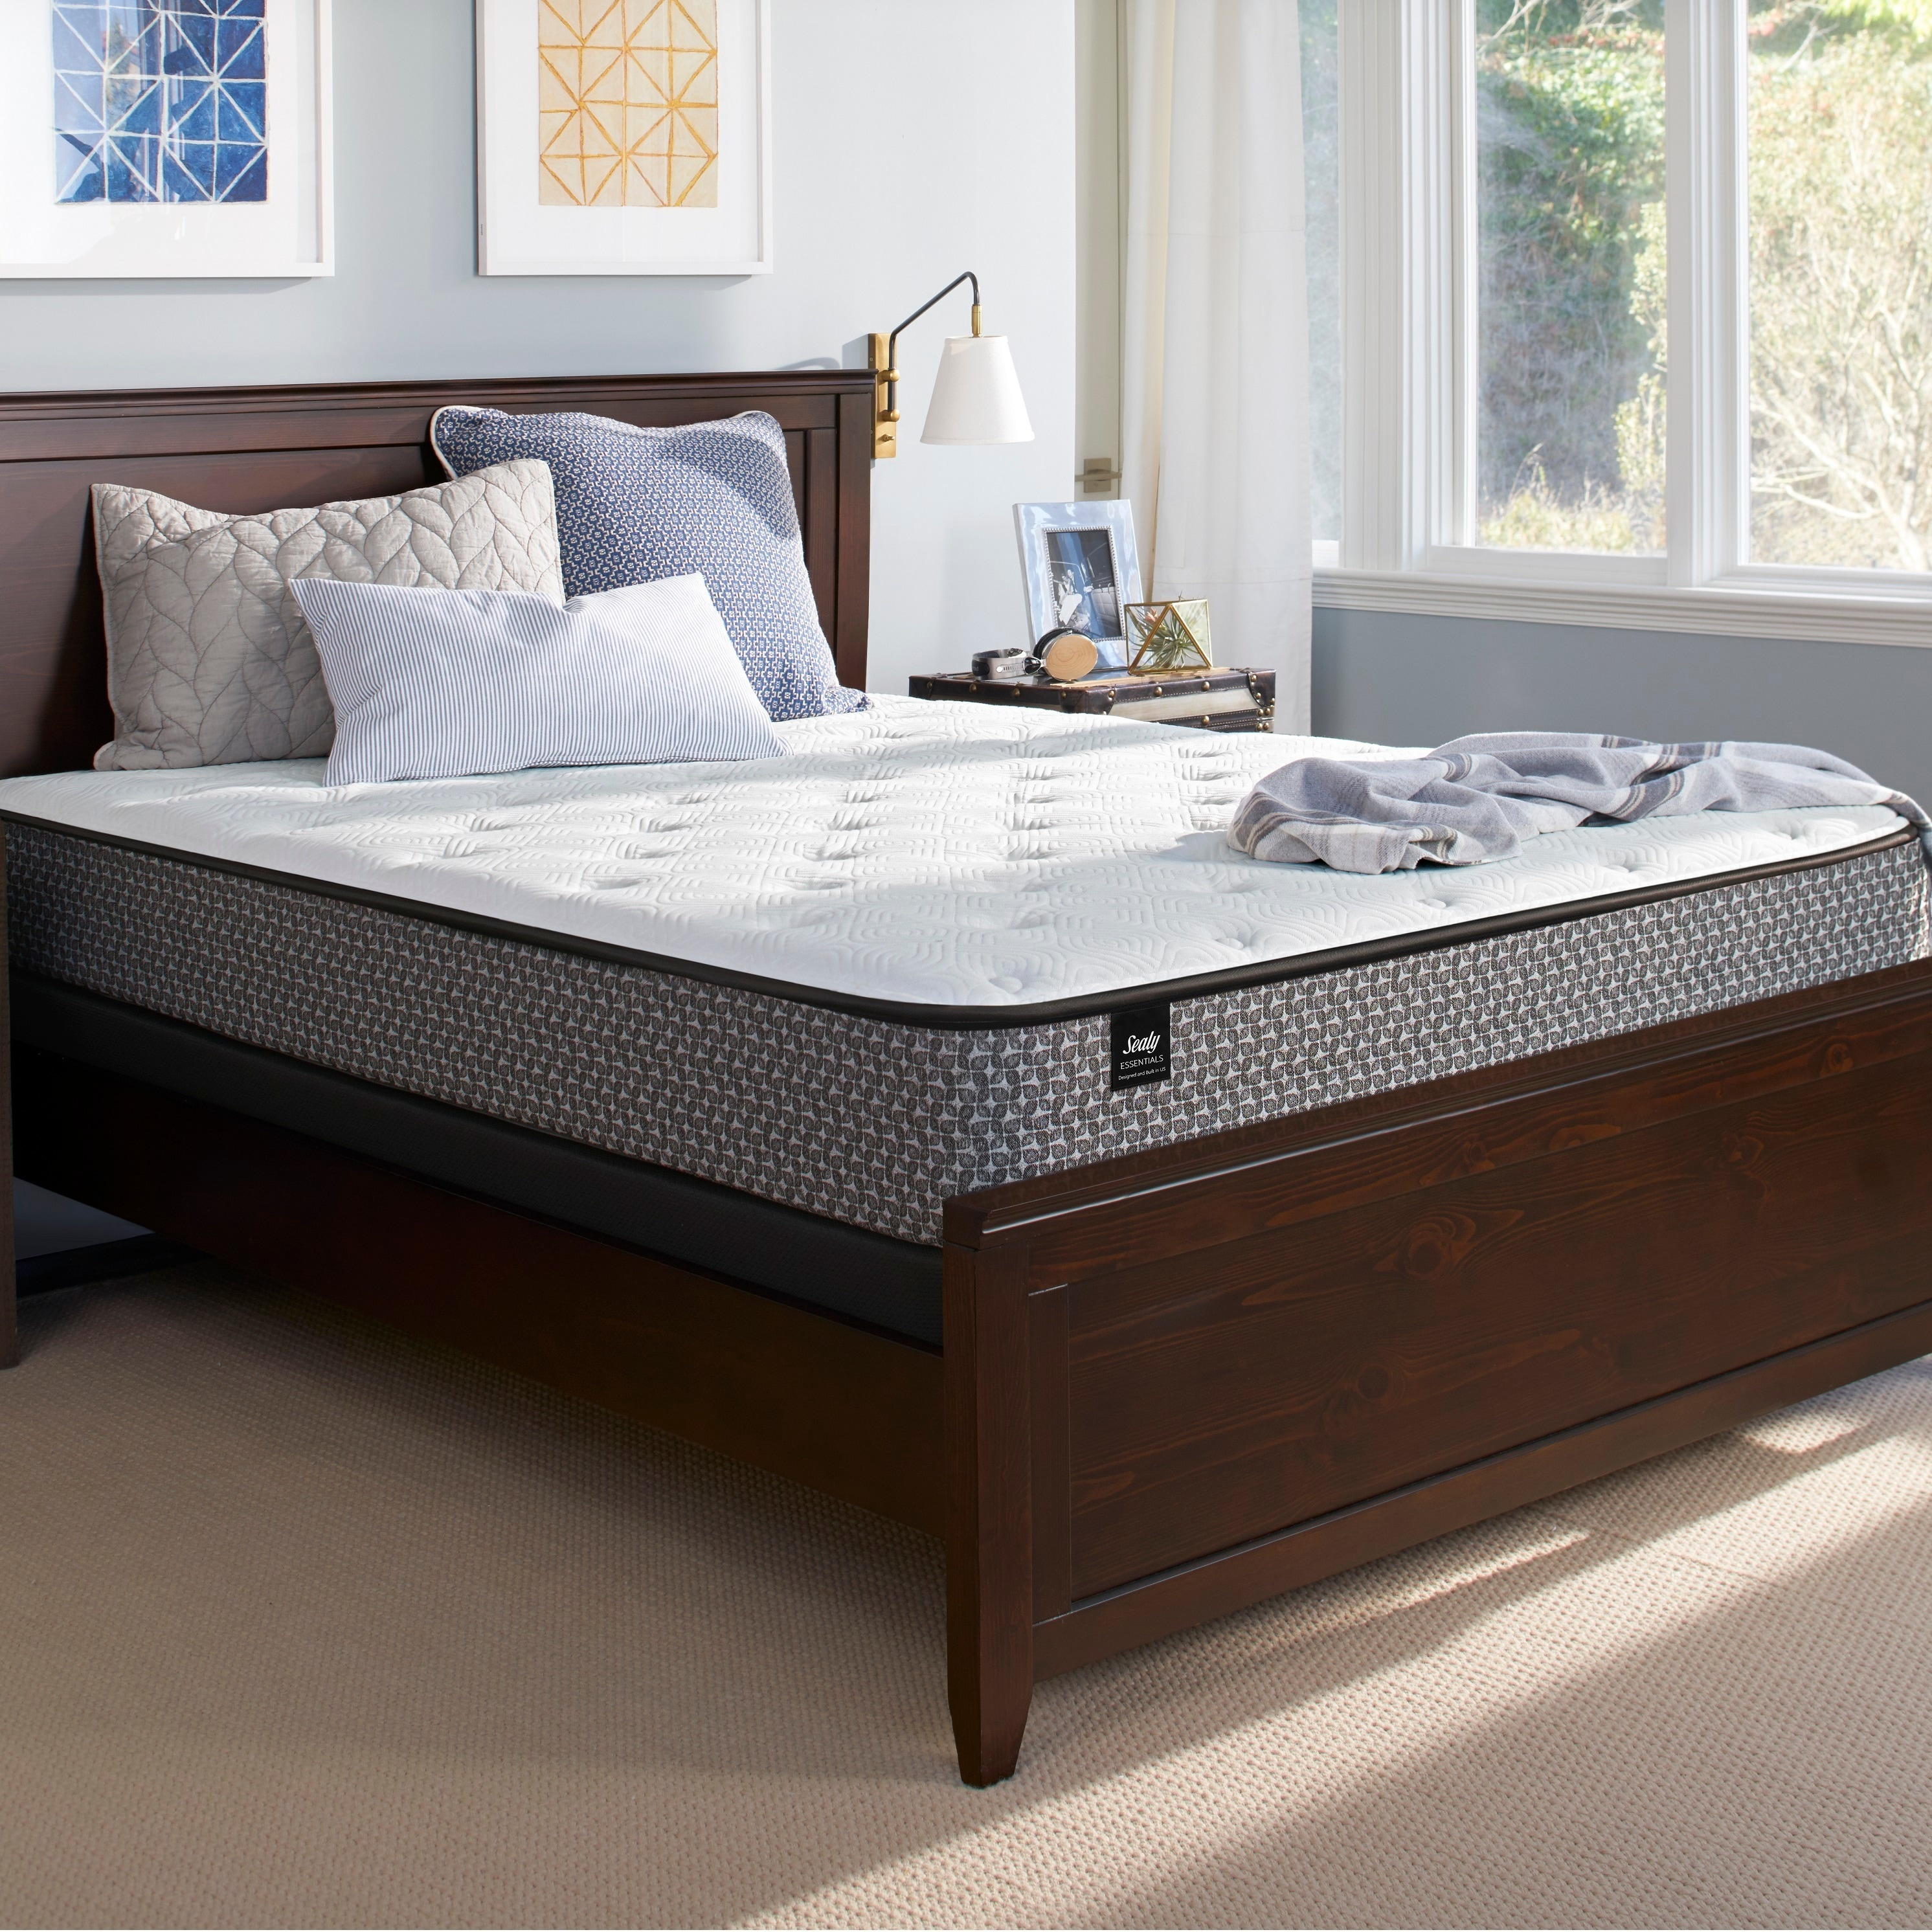 Box Spring Buy King Size Mattress Boxspring Sets Mattresses Online At